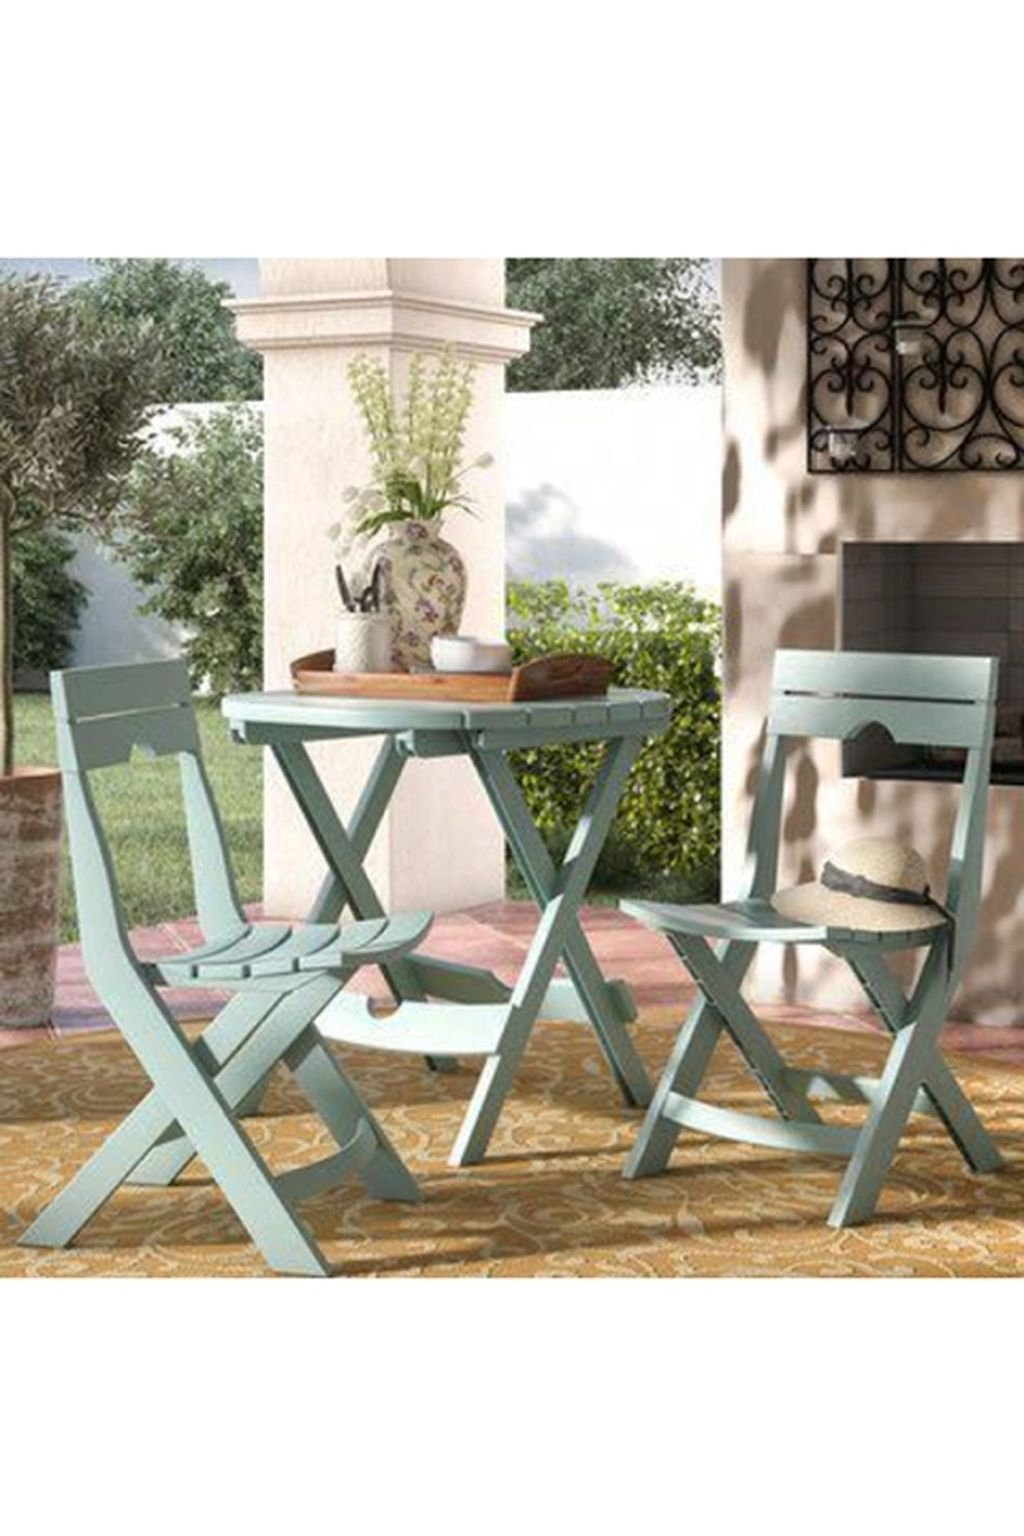 39 Unique Ikea Outdoor Furniture Design Ideas For Holiday Every Day